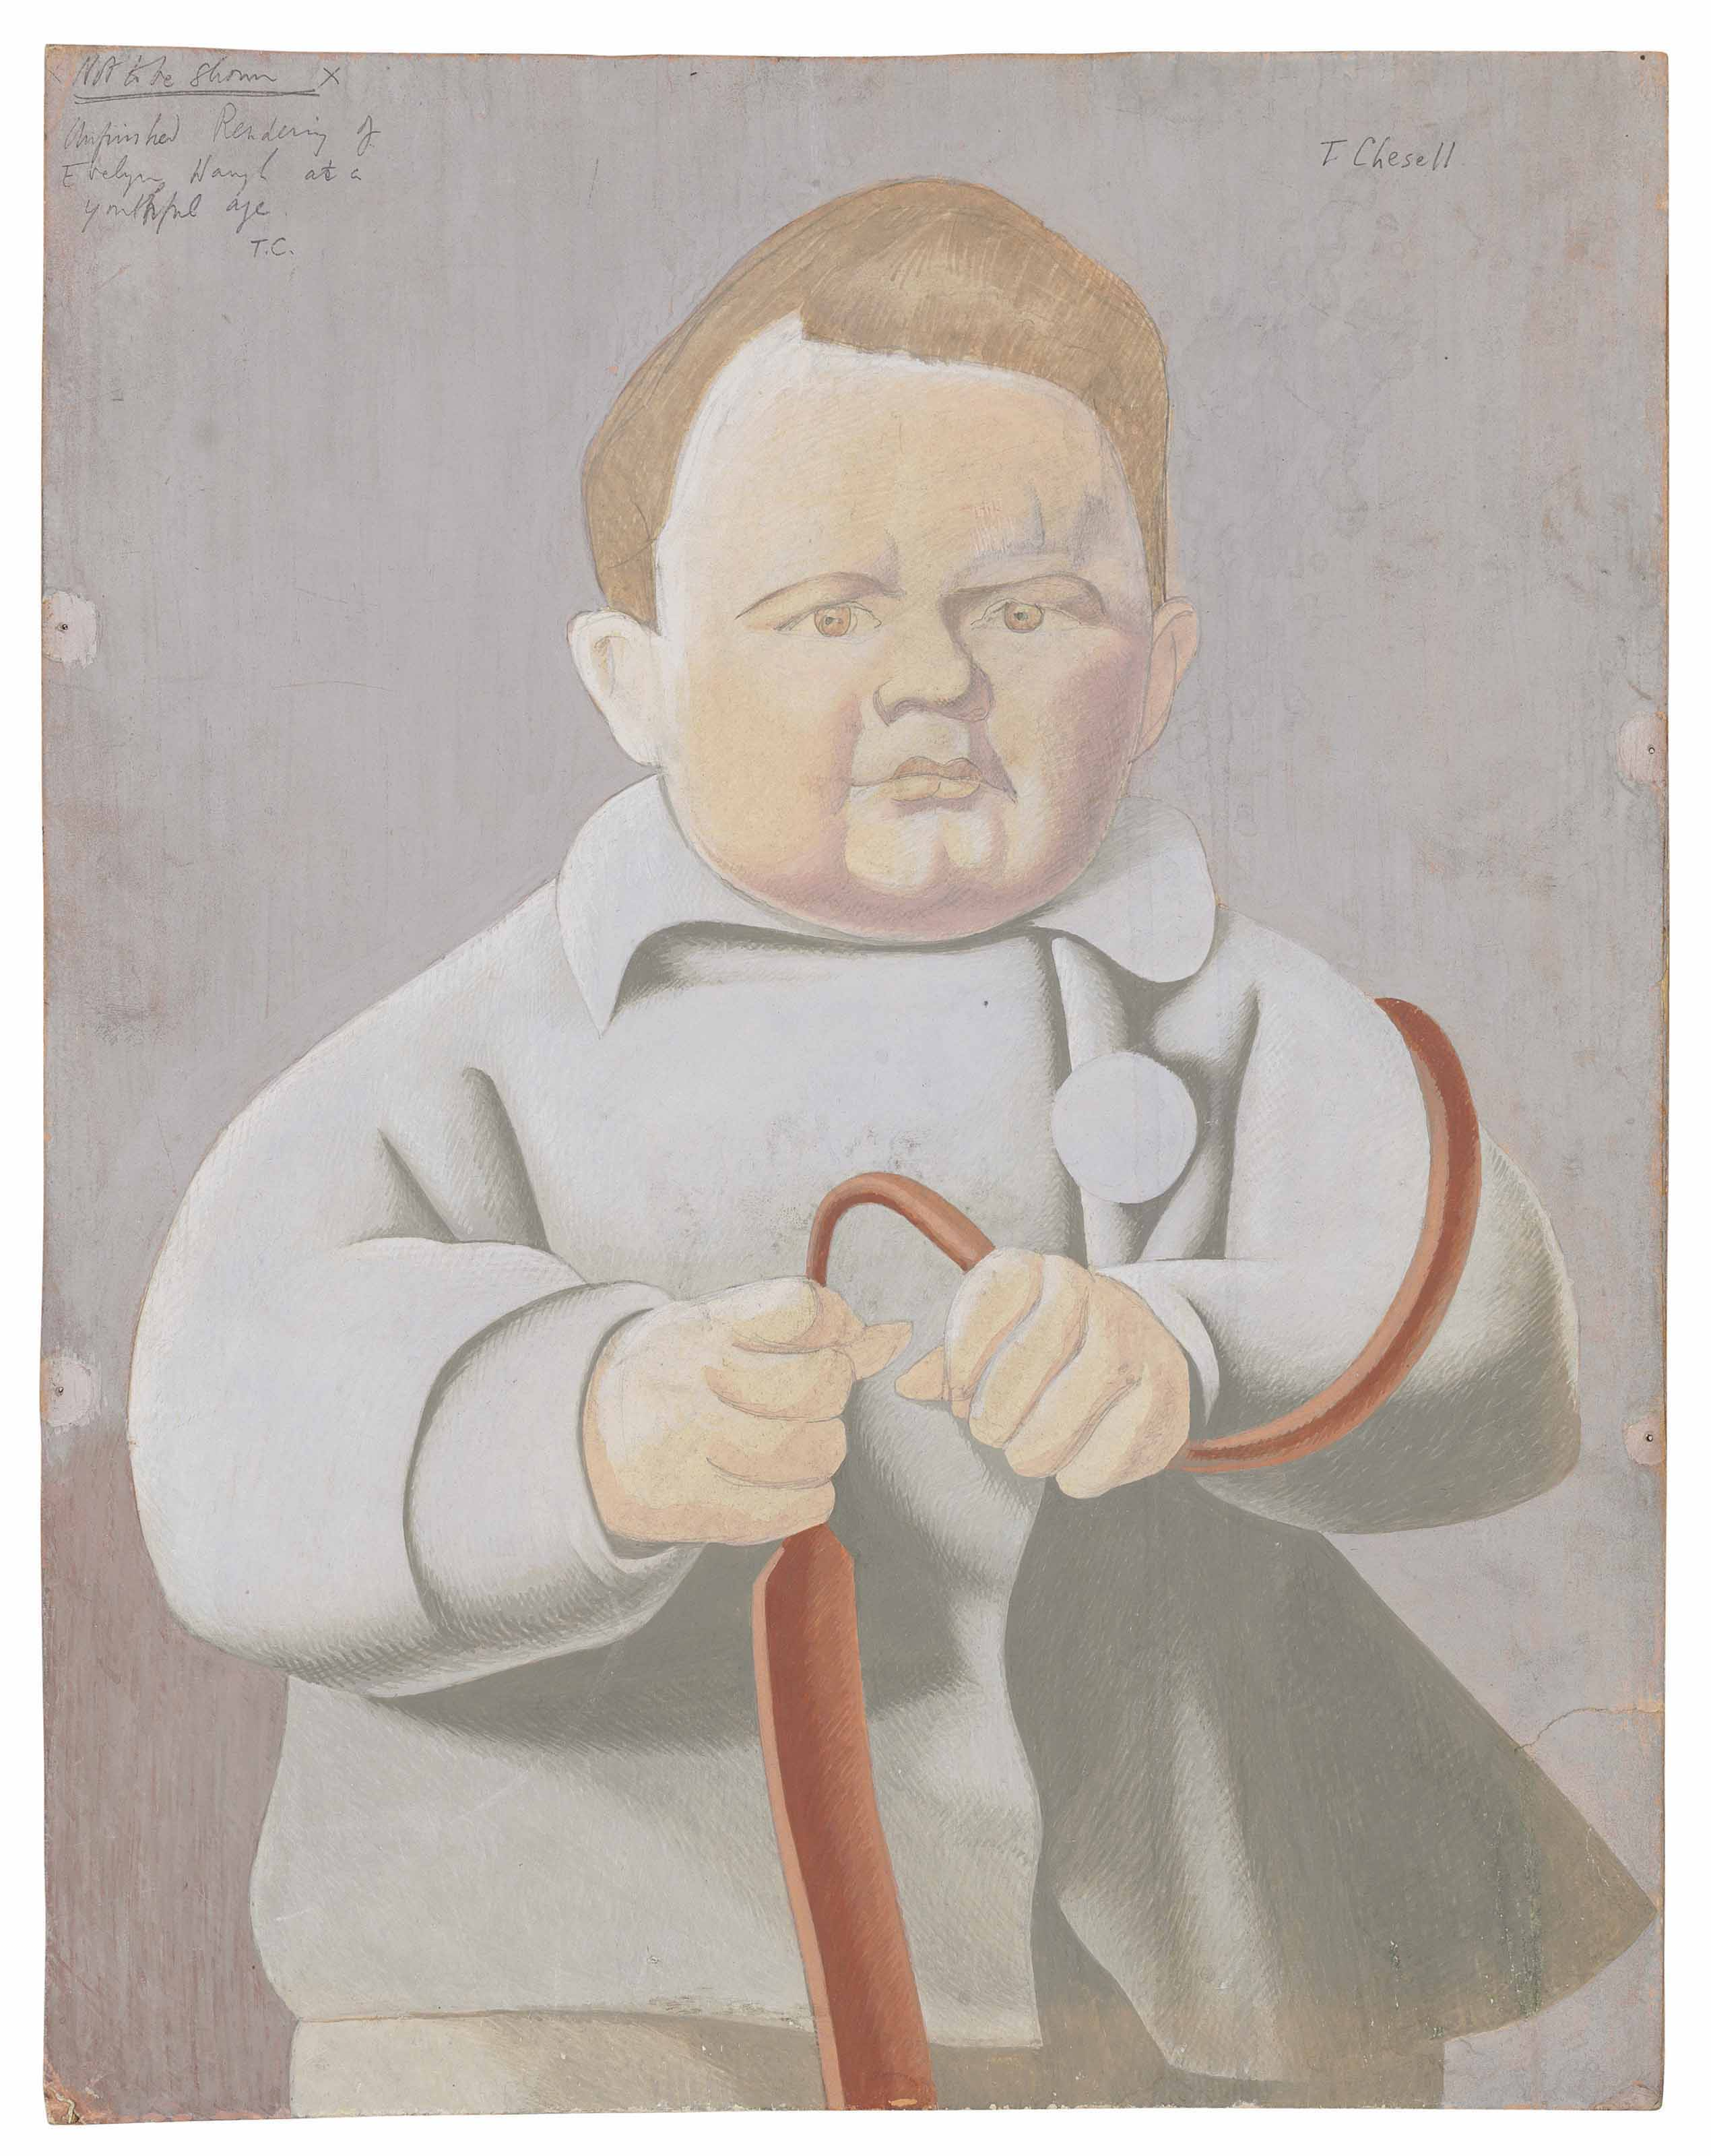 Portrait of Evelyn Waugh as a child, wearing a pale blue coat